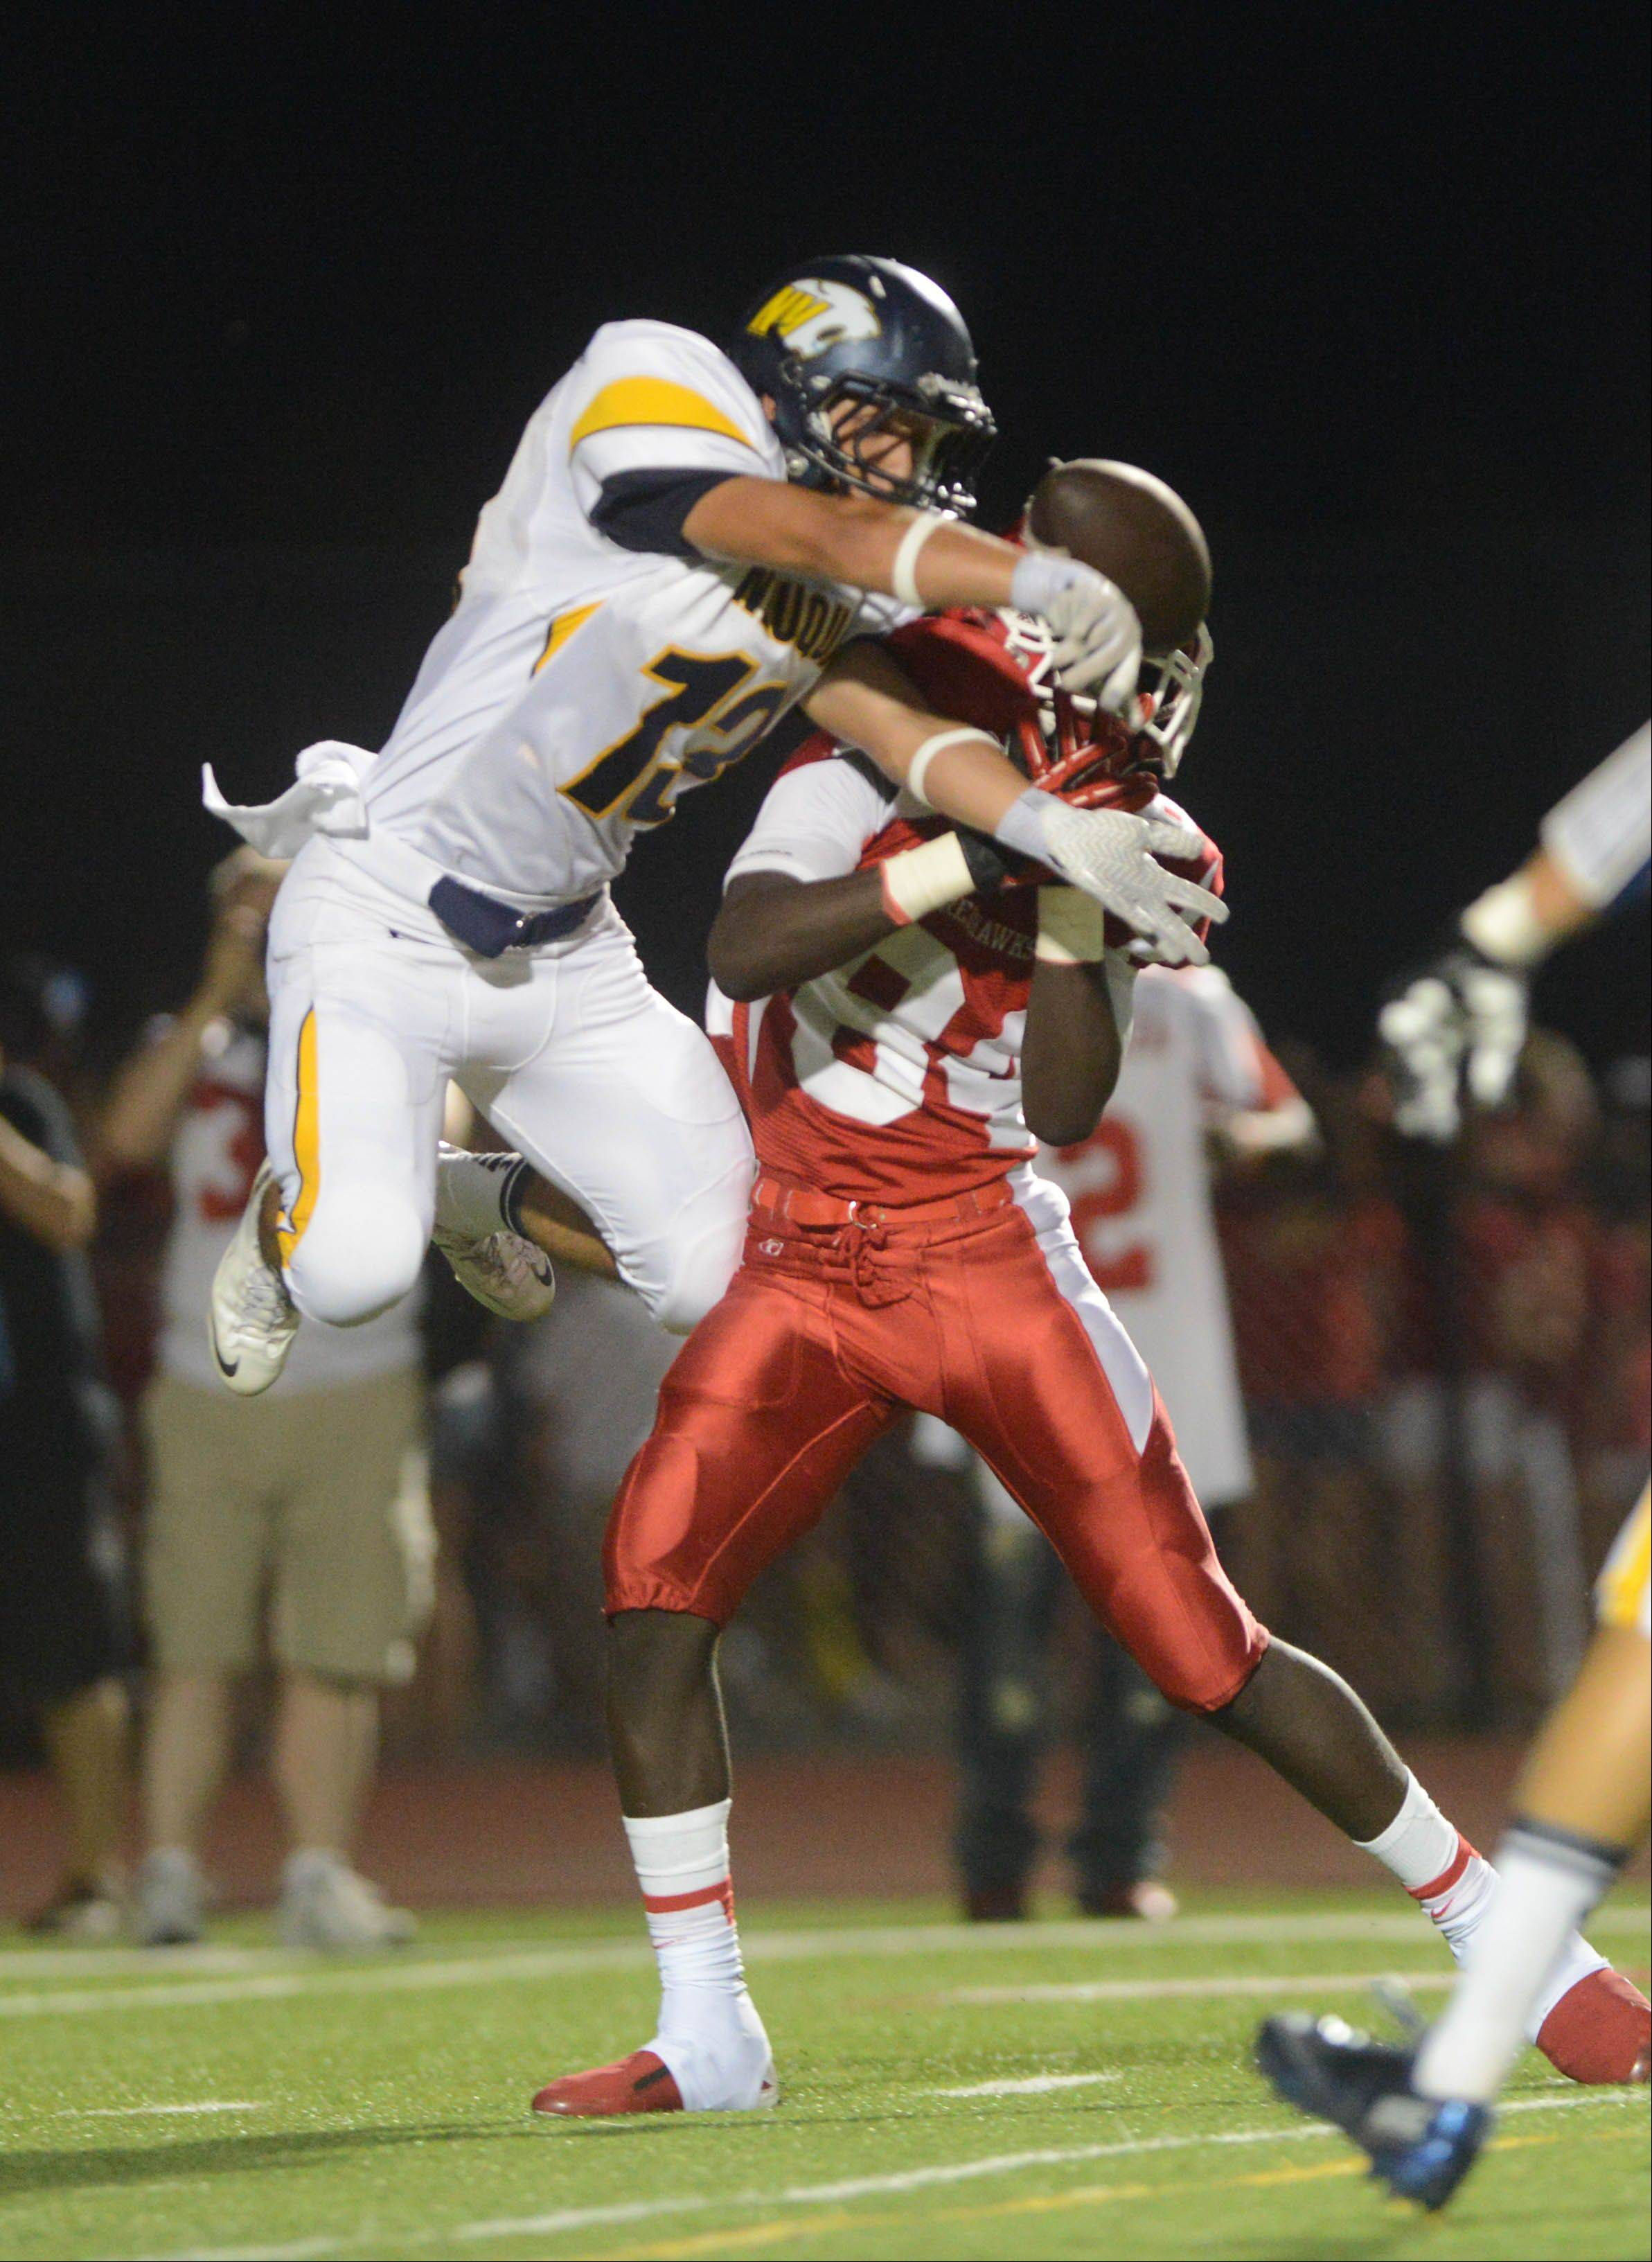 Sheldon Jones of Neuqua Valley and Emmanuel Rugamba of Naperville central go up for a pass.